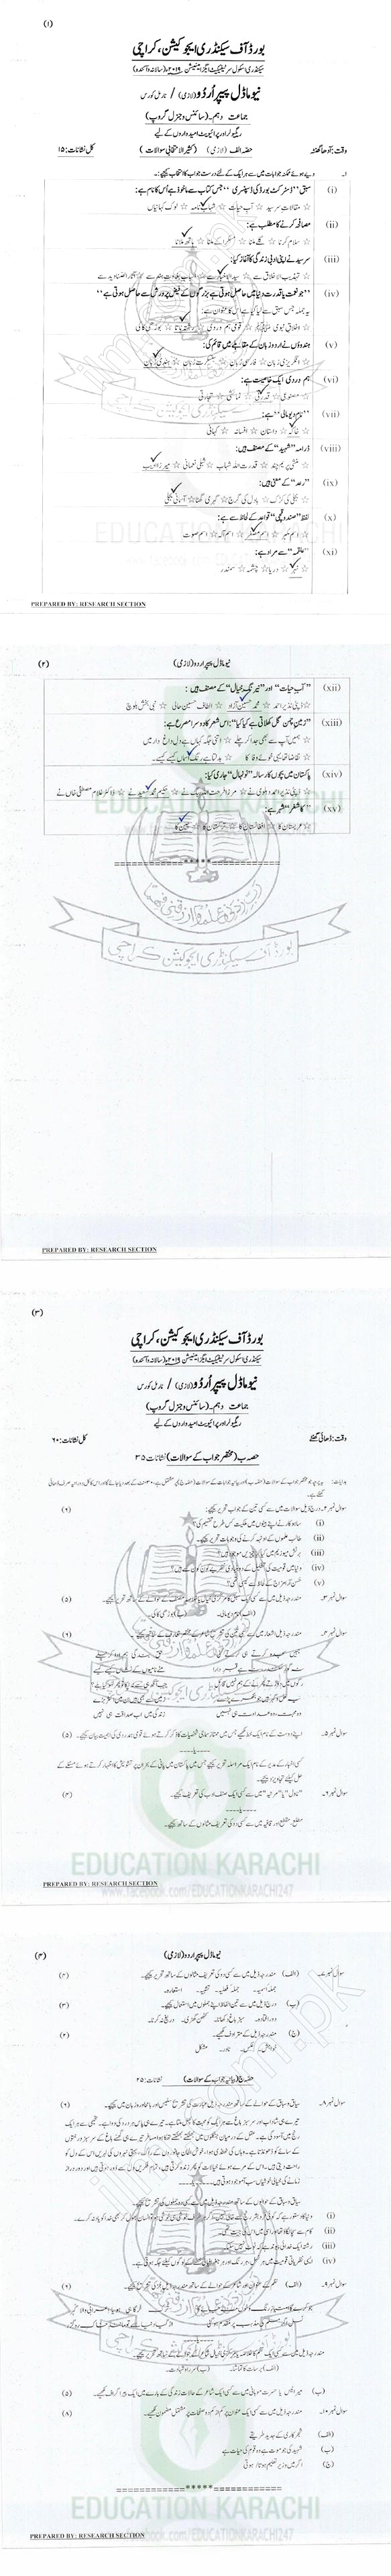 9th, 10th Class Model Paper 2019 Karachi Board Science Group